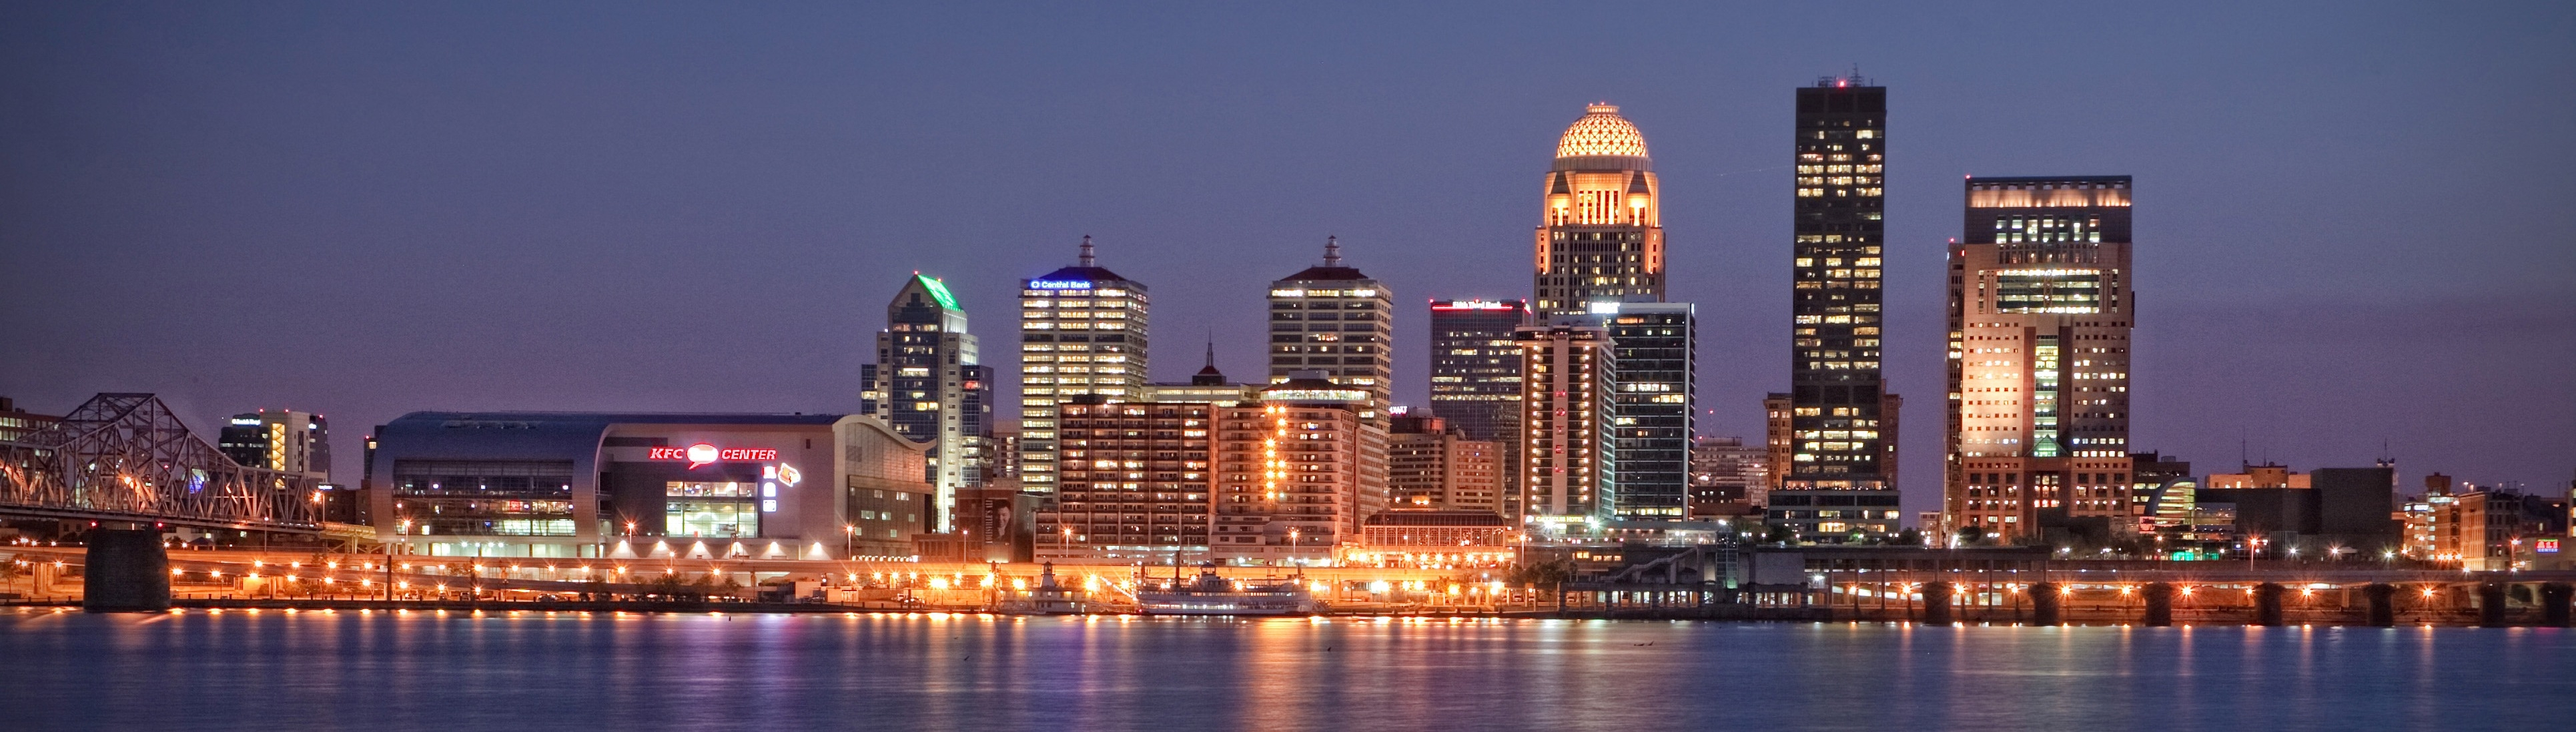 Ford Louisville Ky >> 5 Things Visitors Should Know About Louisville | Galt House Hotel